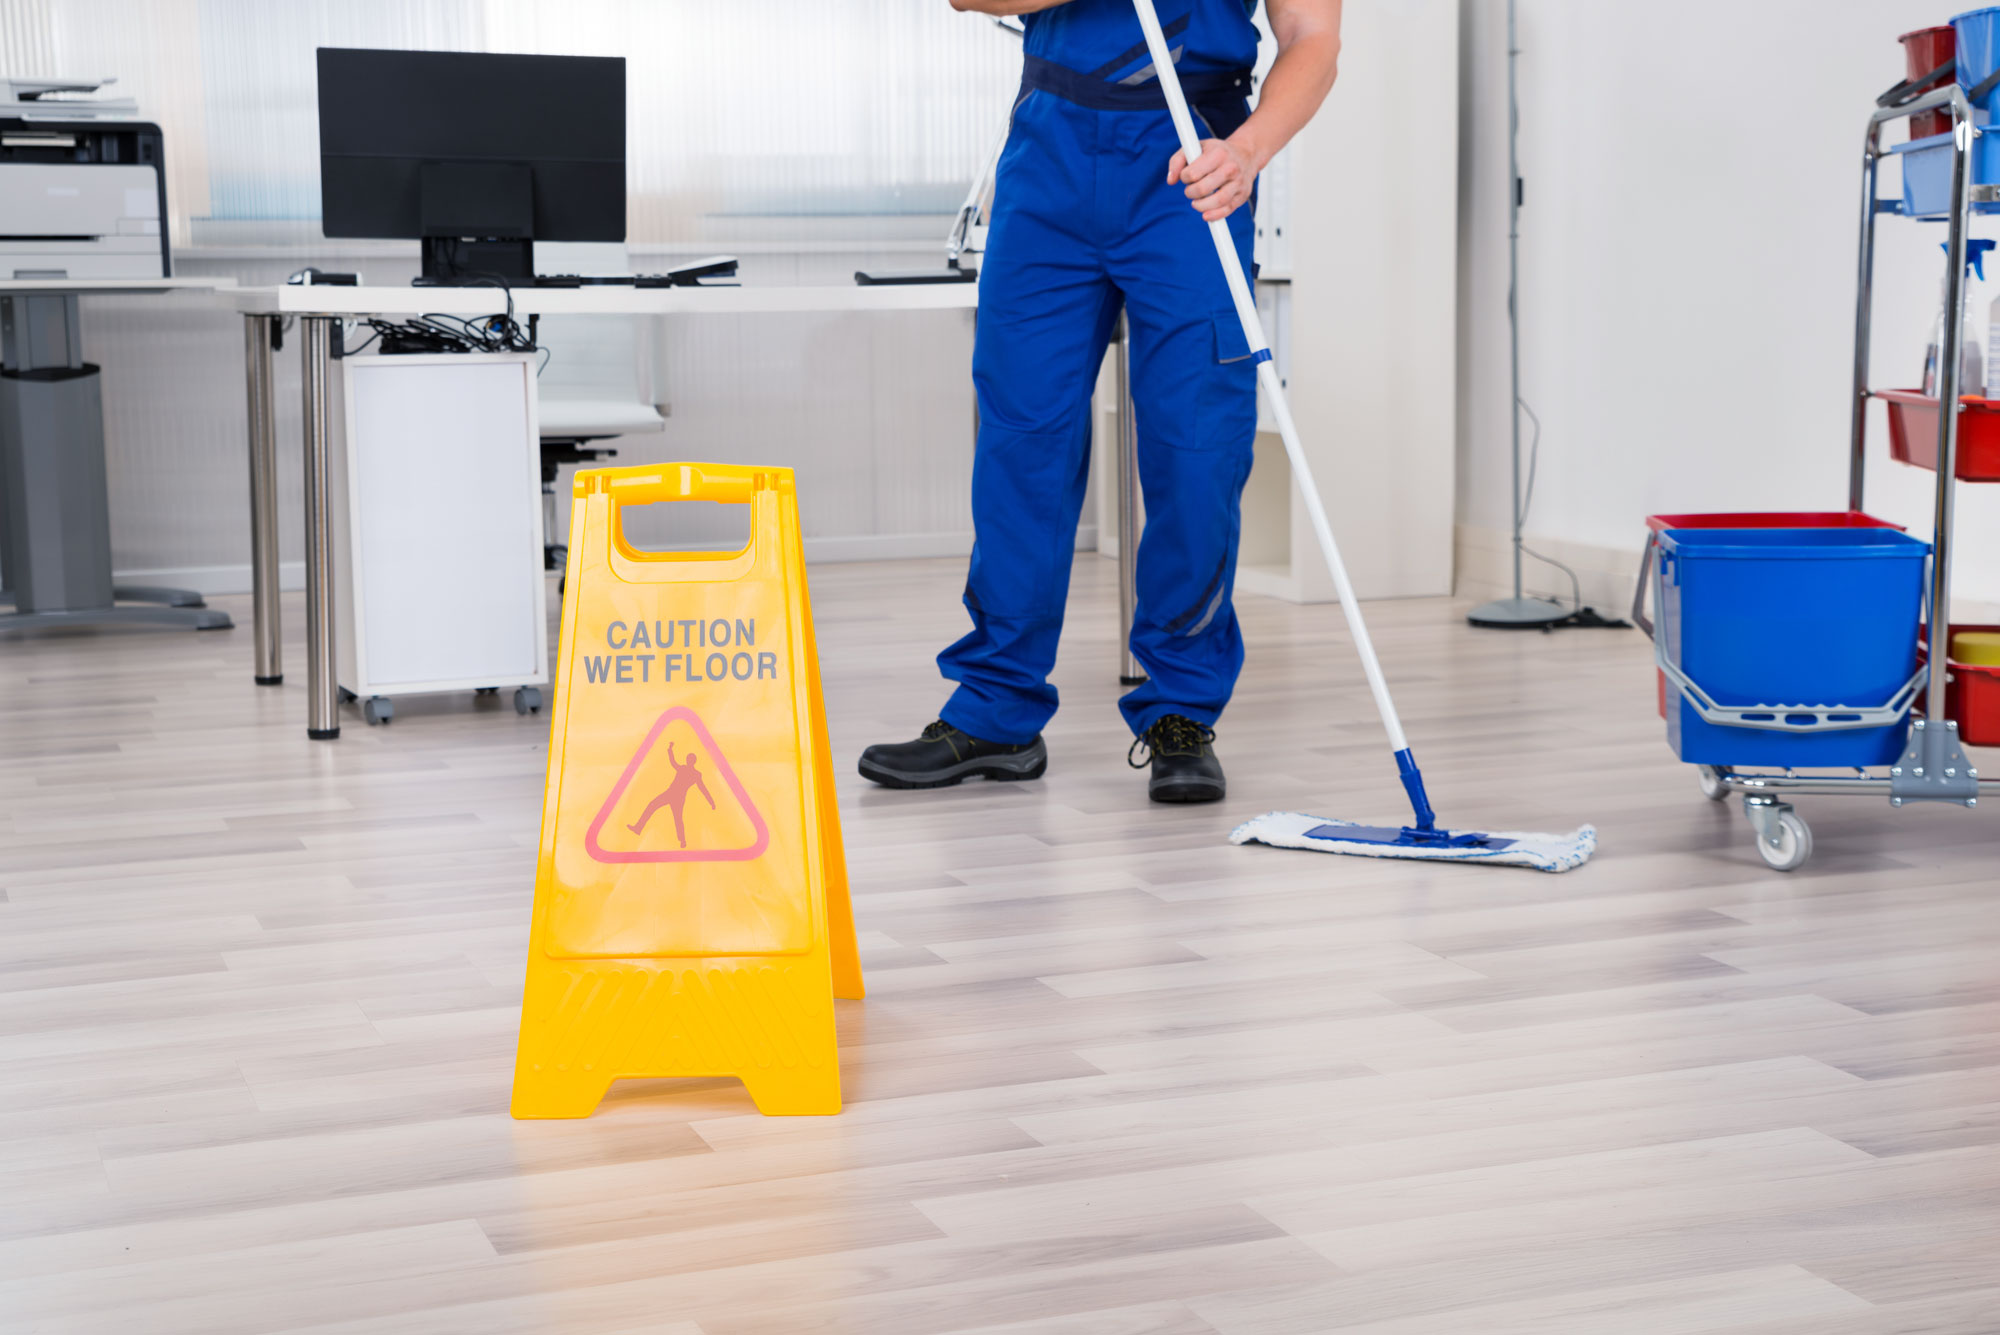 cleantopia-janitorial-commercial-cleaning-services-mopping-silhouette-header-3